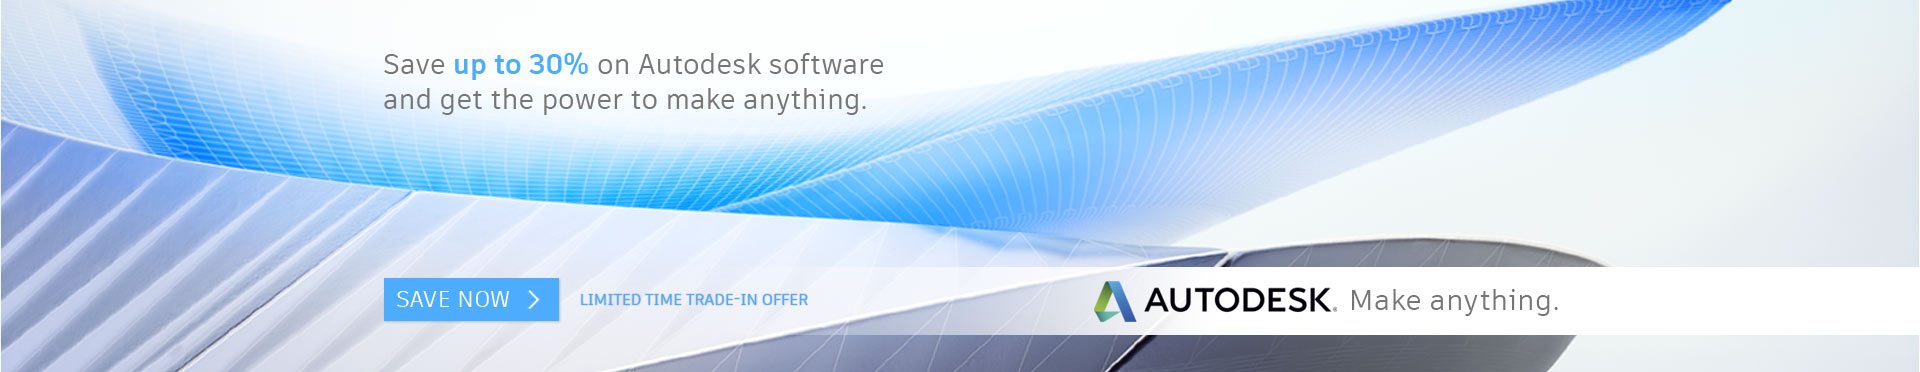 Autodesk Legacy Offer